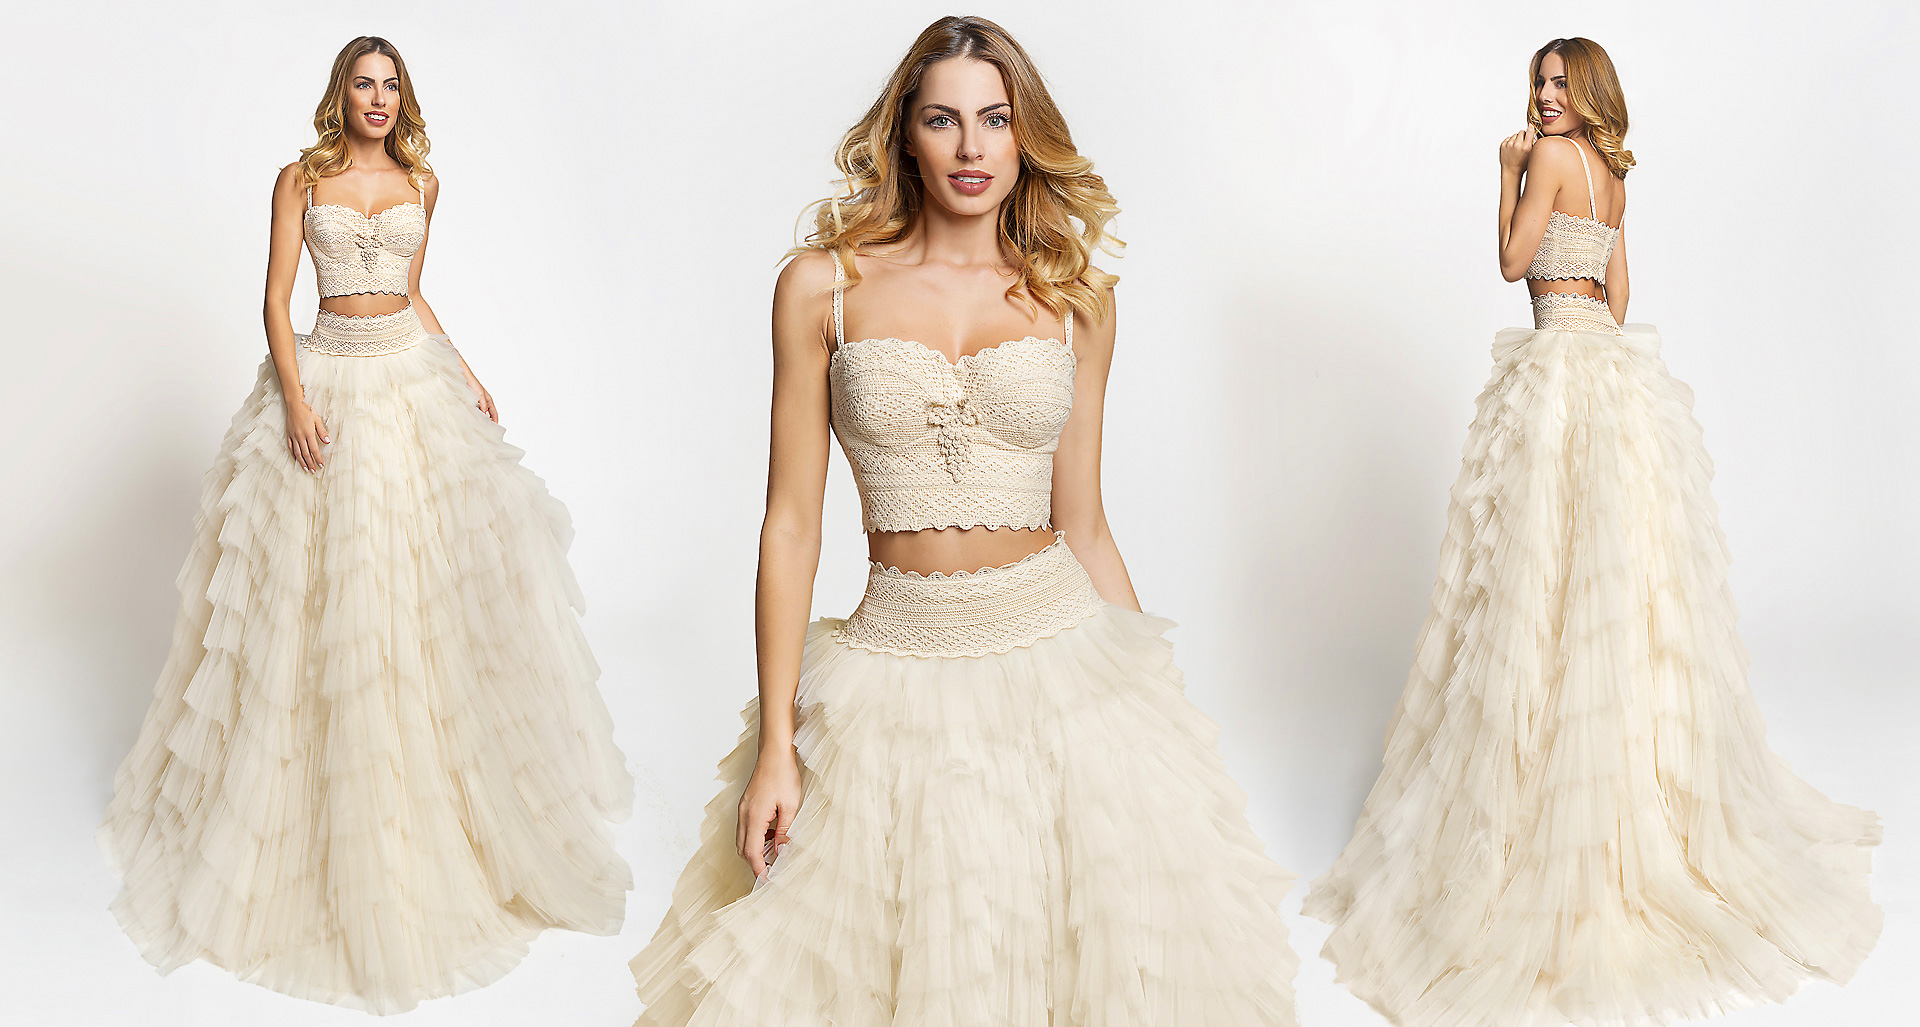 Athina wedding dress from  Hellenic Vintage Crop Top Collection